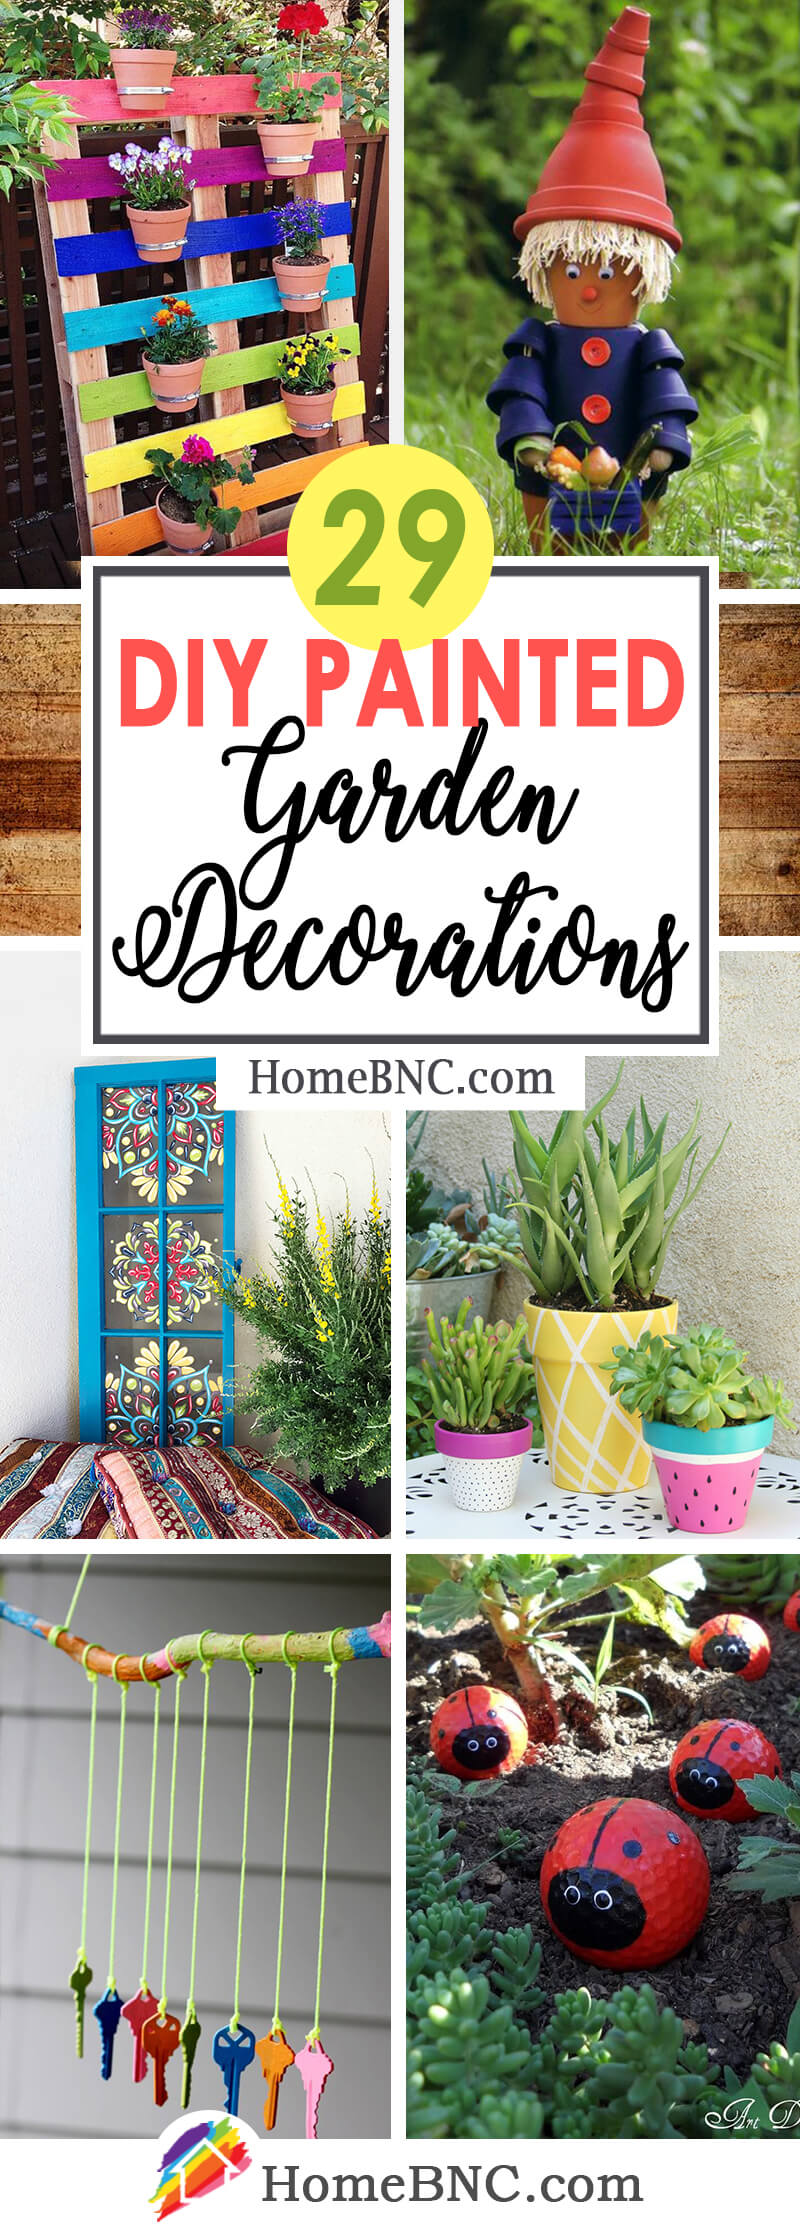 29 Best DIY Painted Garden Decoration Ideas and Designs for 2018